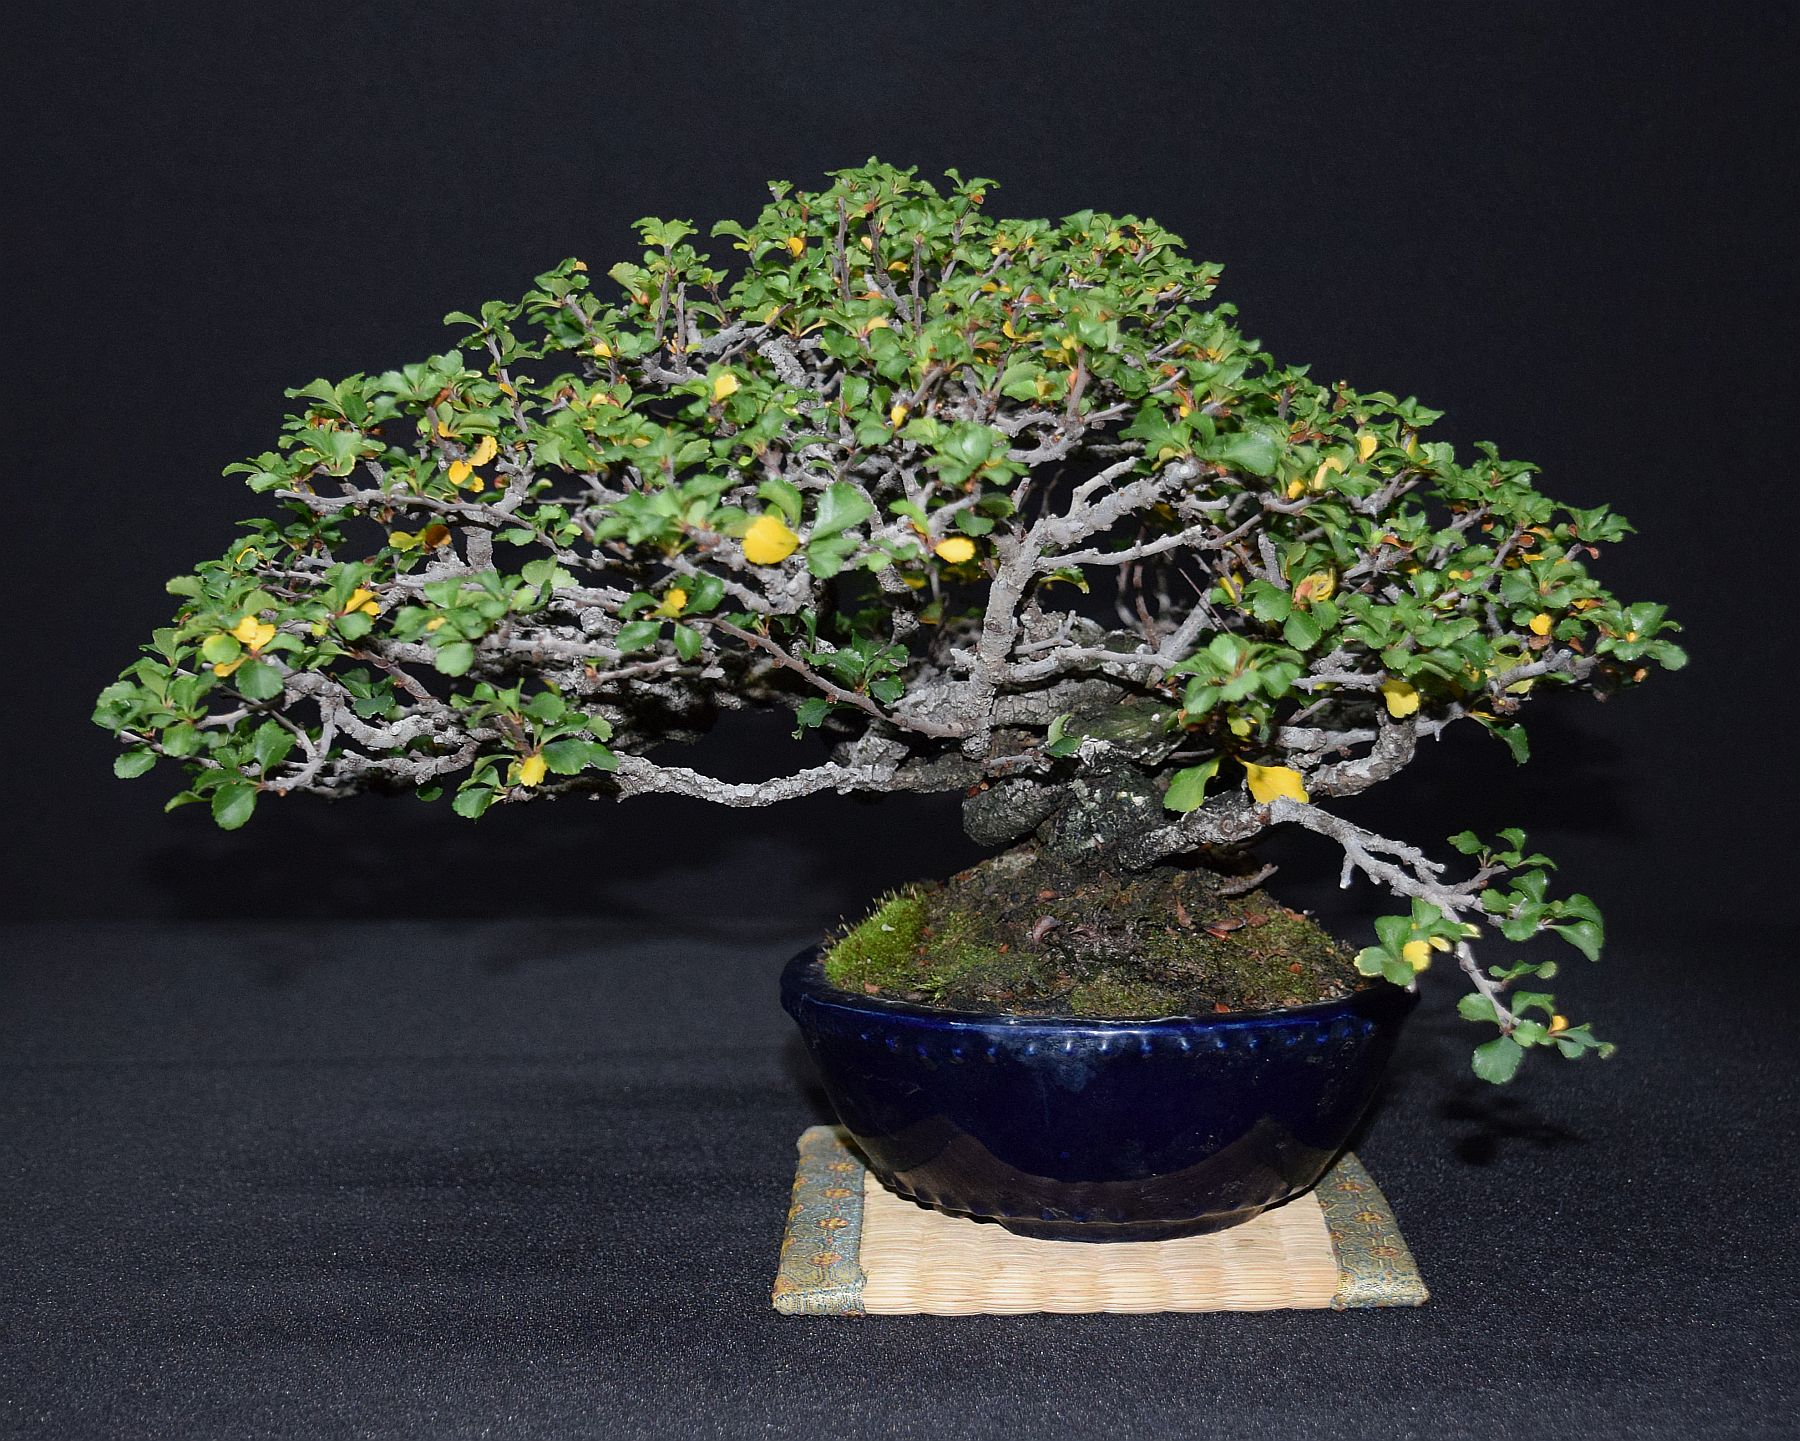 bonsai-museum-luis-vallejo-038